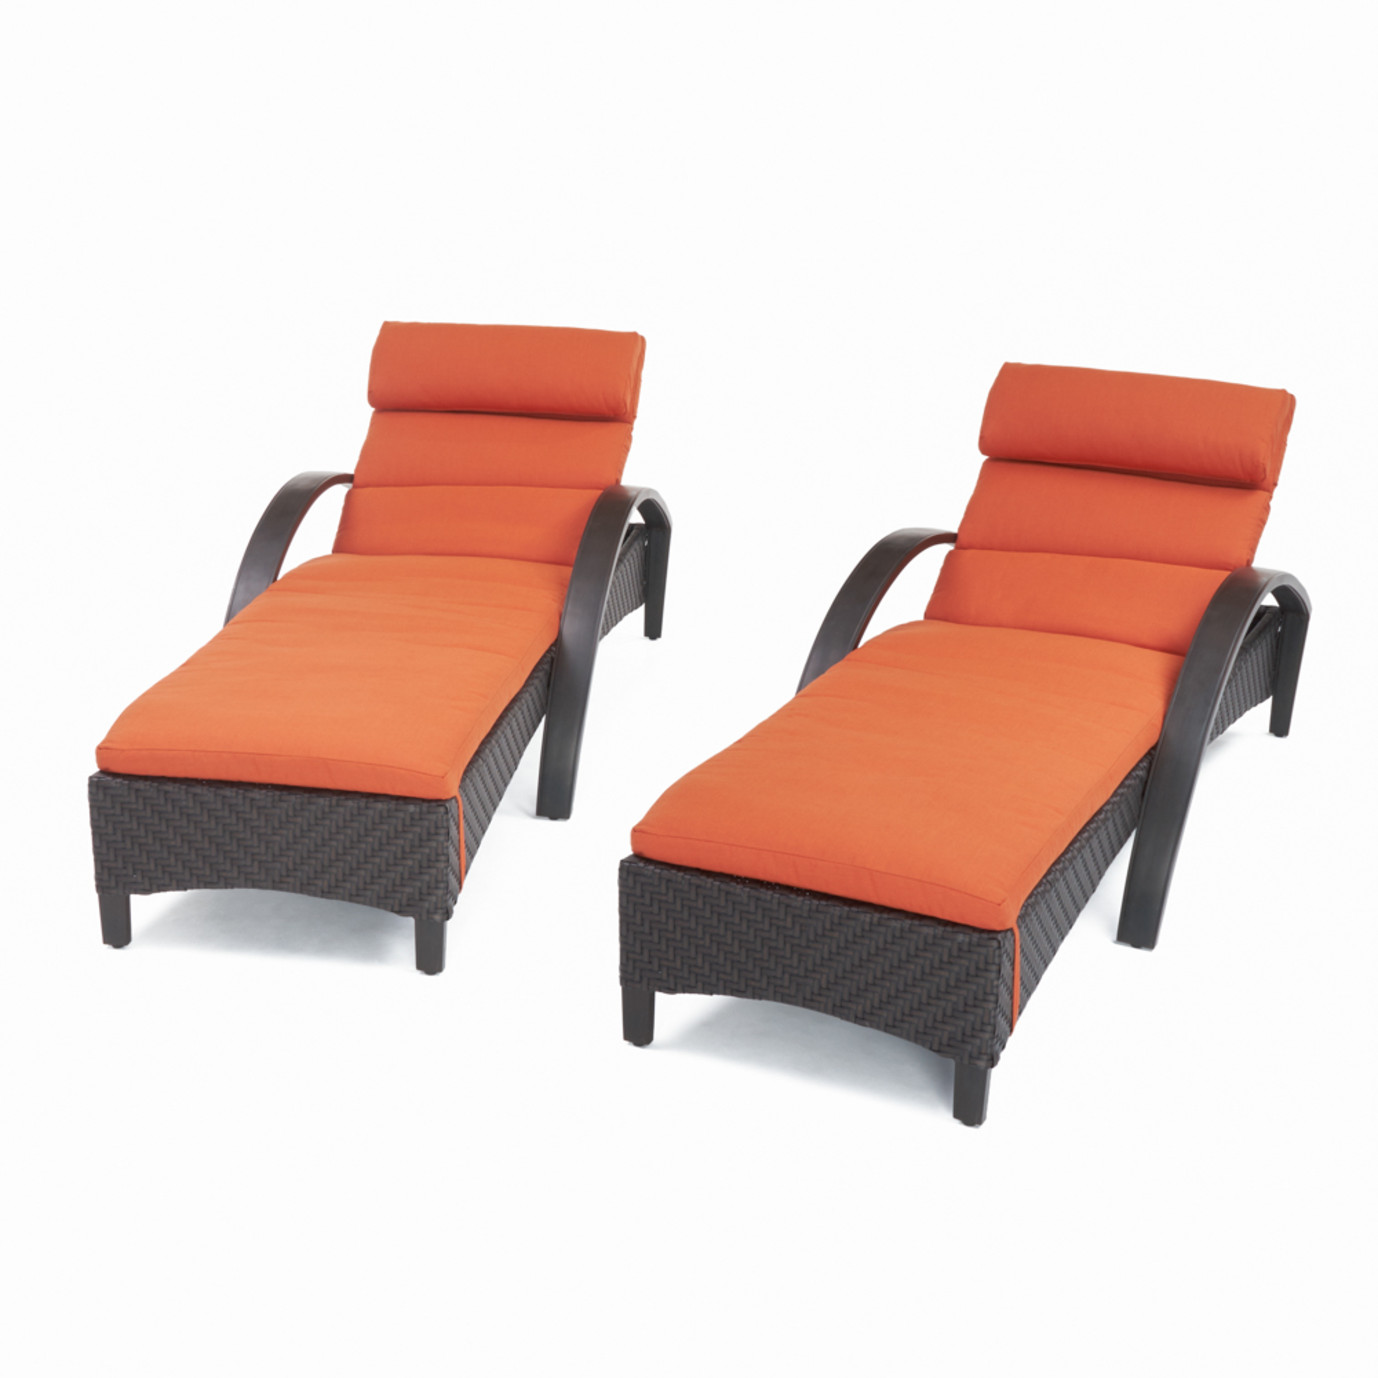 Barcelo Chaise Lounges With Cushions Tikka Orange Rst